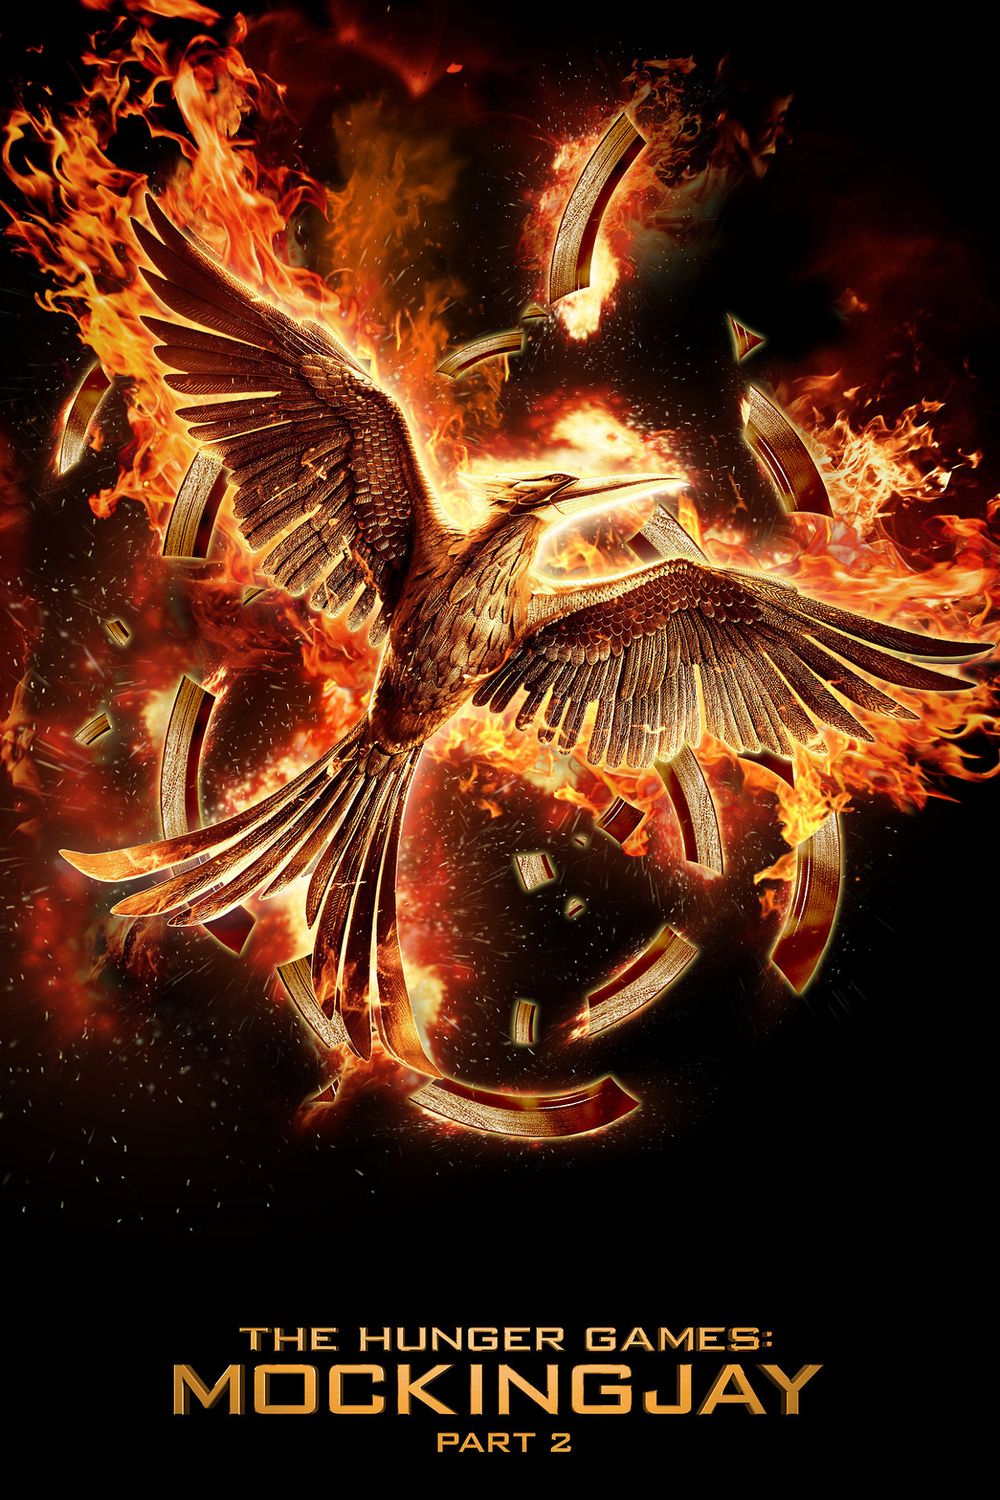 The Hunger Games Mockingjay Part 2 Trailer, Cast and Release Date ...